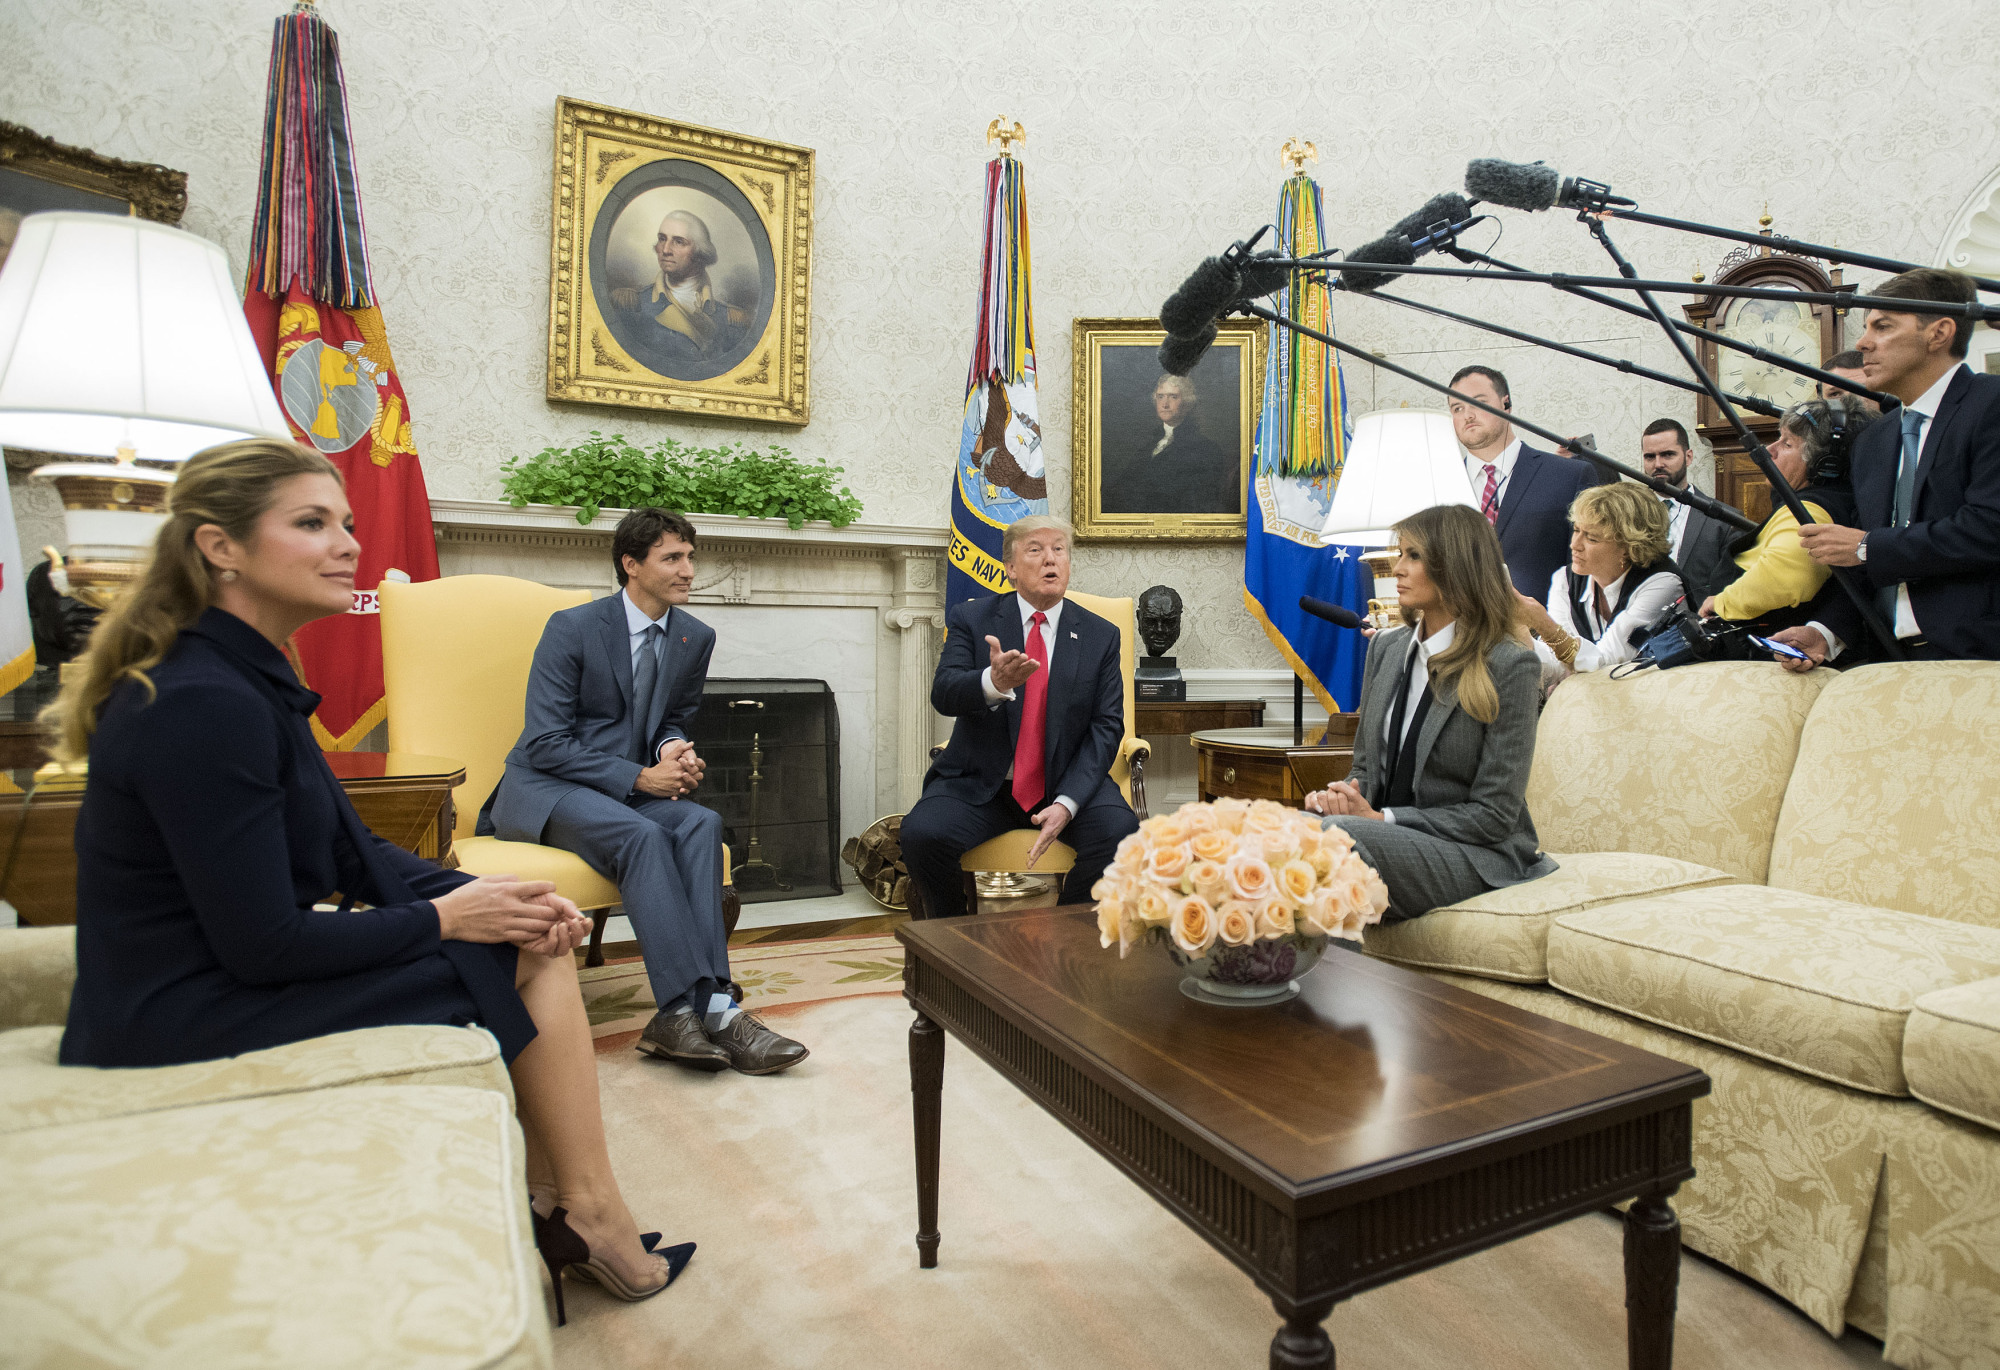 U.S. President Donald Trump meets with Canadian Prime Minister Justin Trudeau in the White House Oval Office on Wednesday. With them are first lady Melania Trump and Trudeau's wife, Sophie Gregoire Trudeau.   BLOOMBERG